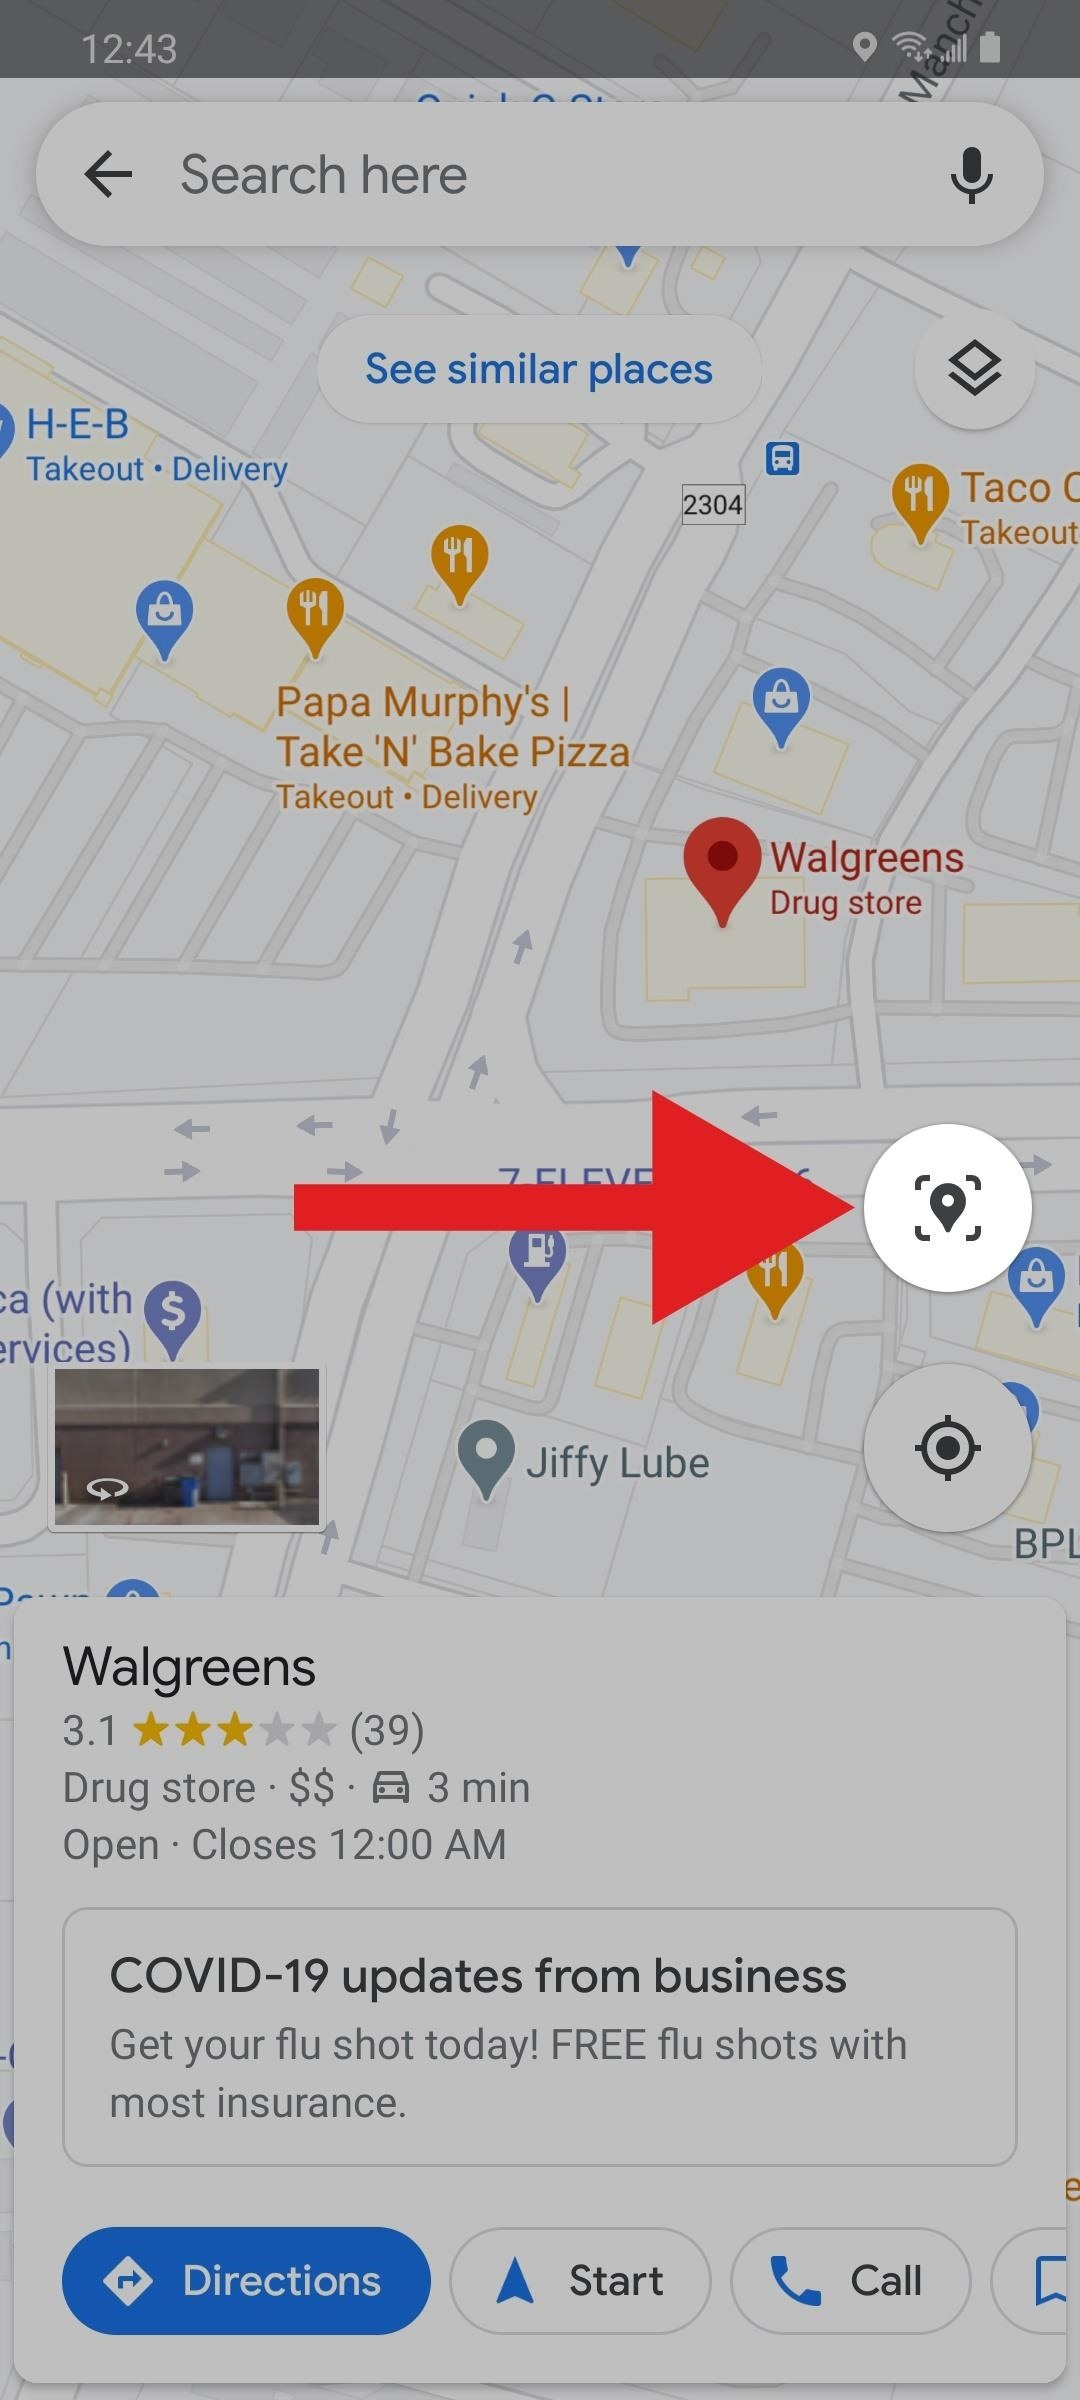 How to Use Your Phone's Camera as an Augmented Reality Viewfinder to Find Places in Google Maps